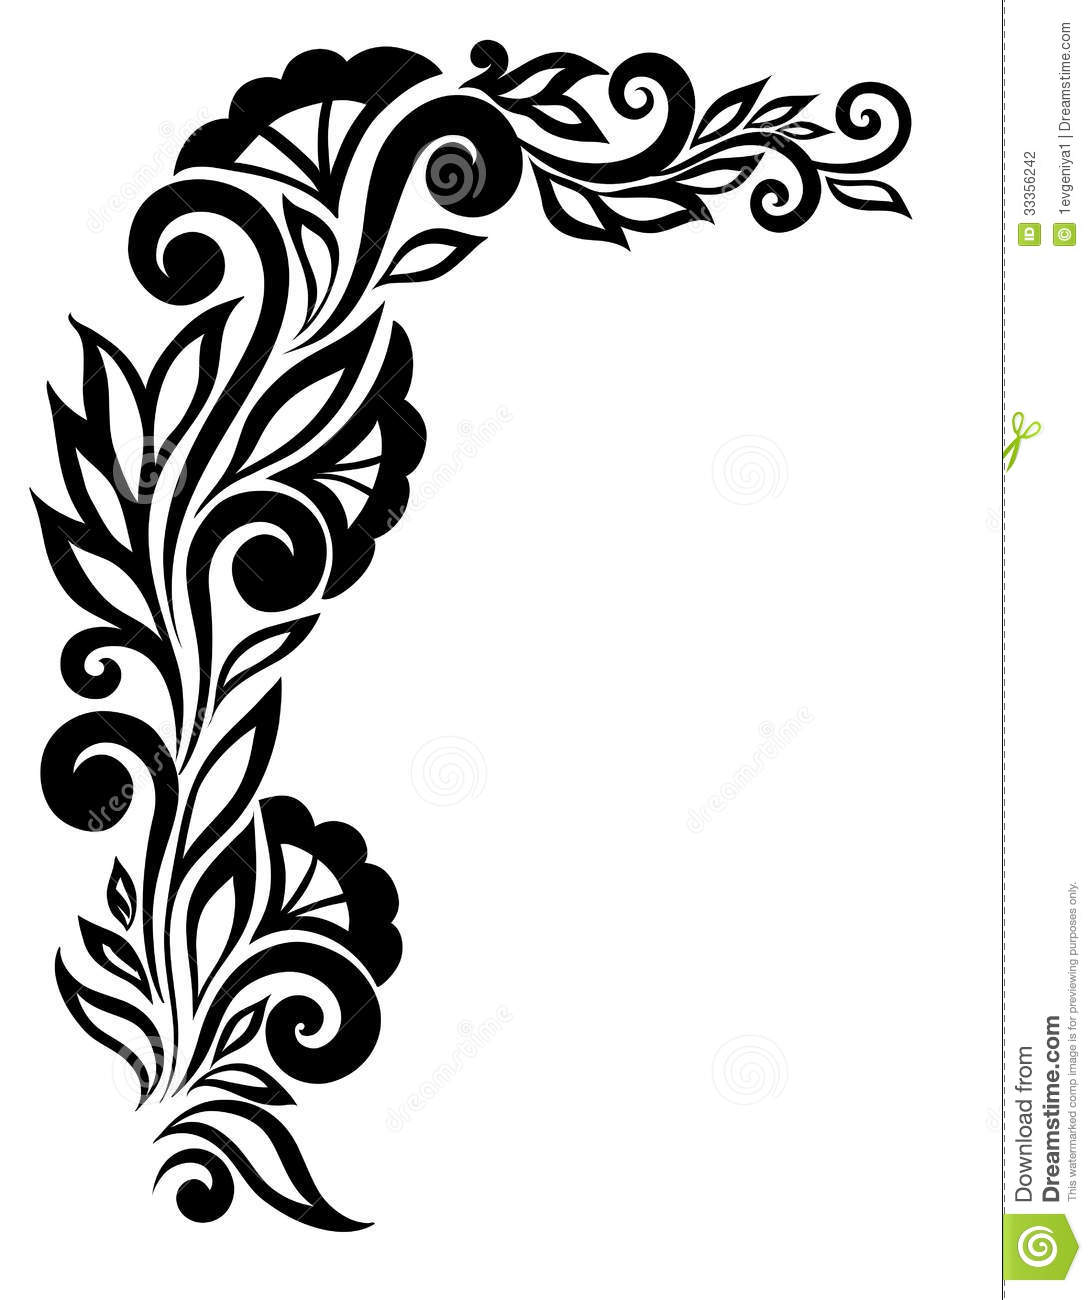 1092x1300 Design Black And White Hue On Furniture Or Border Free Download